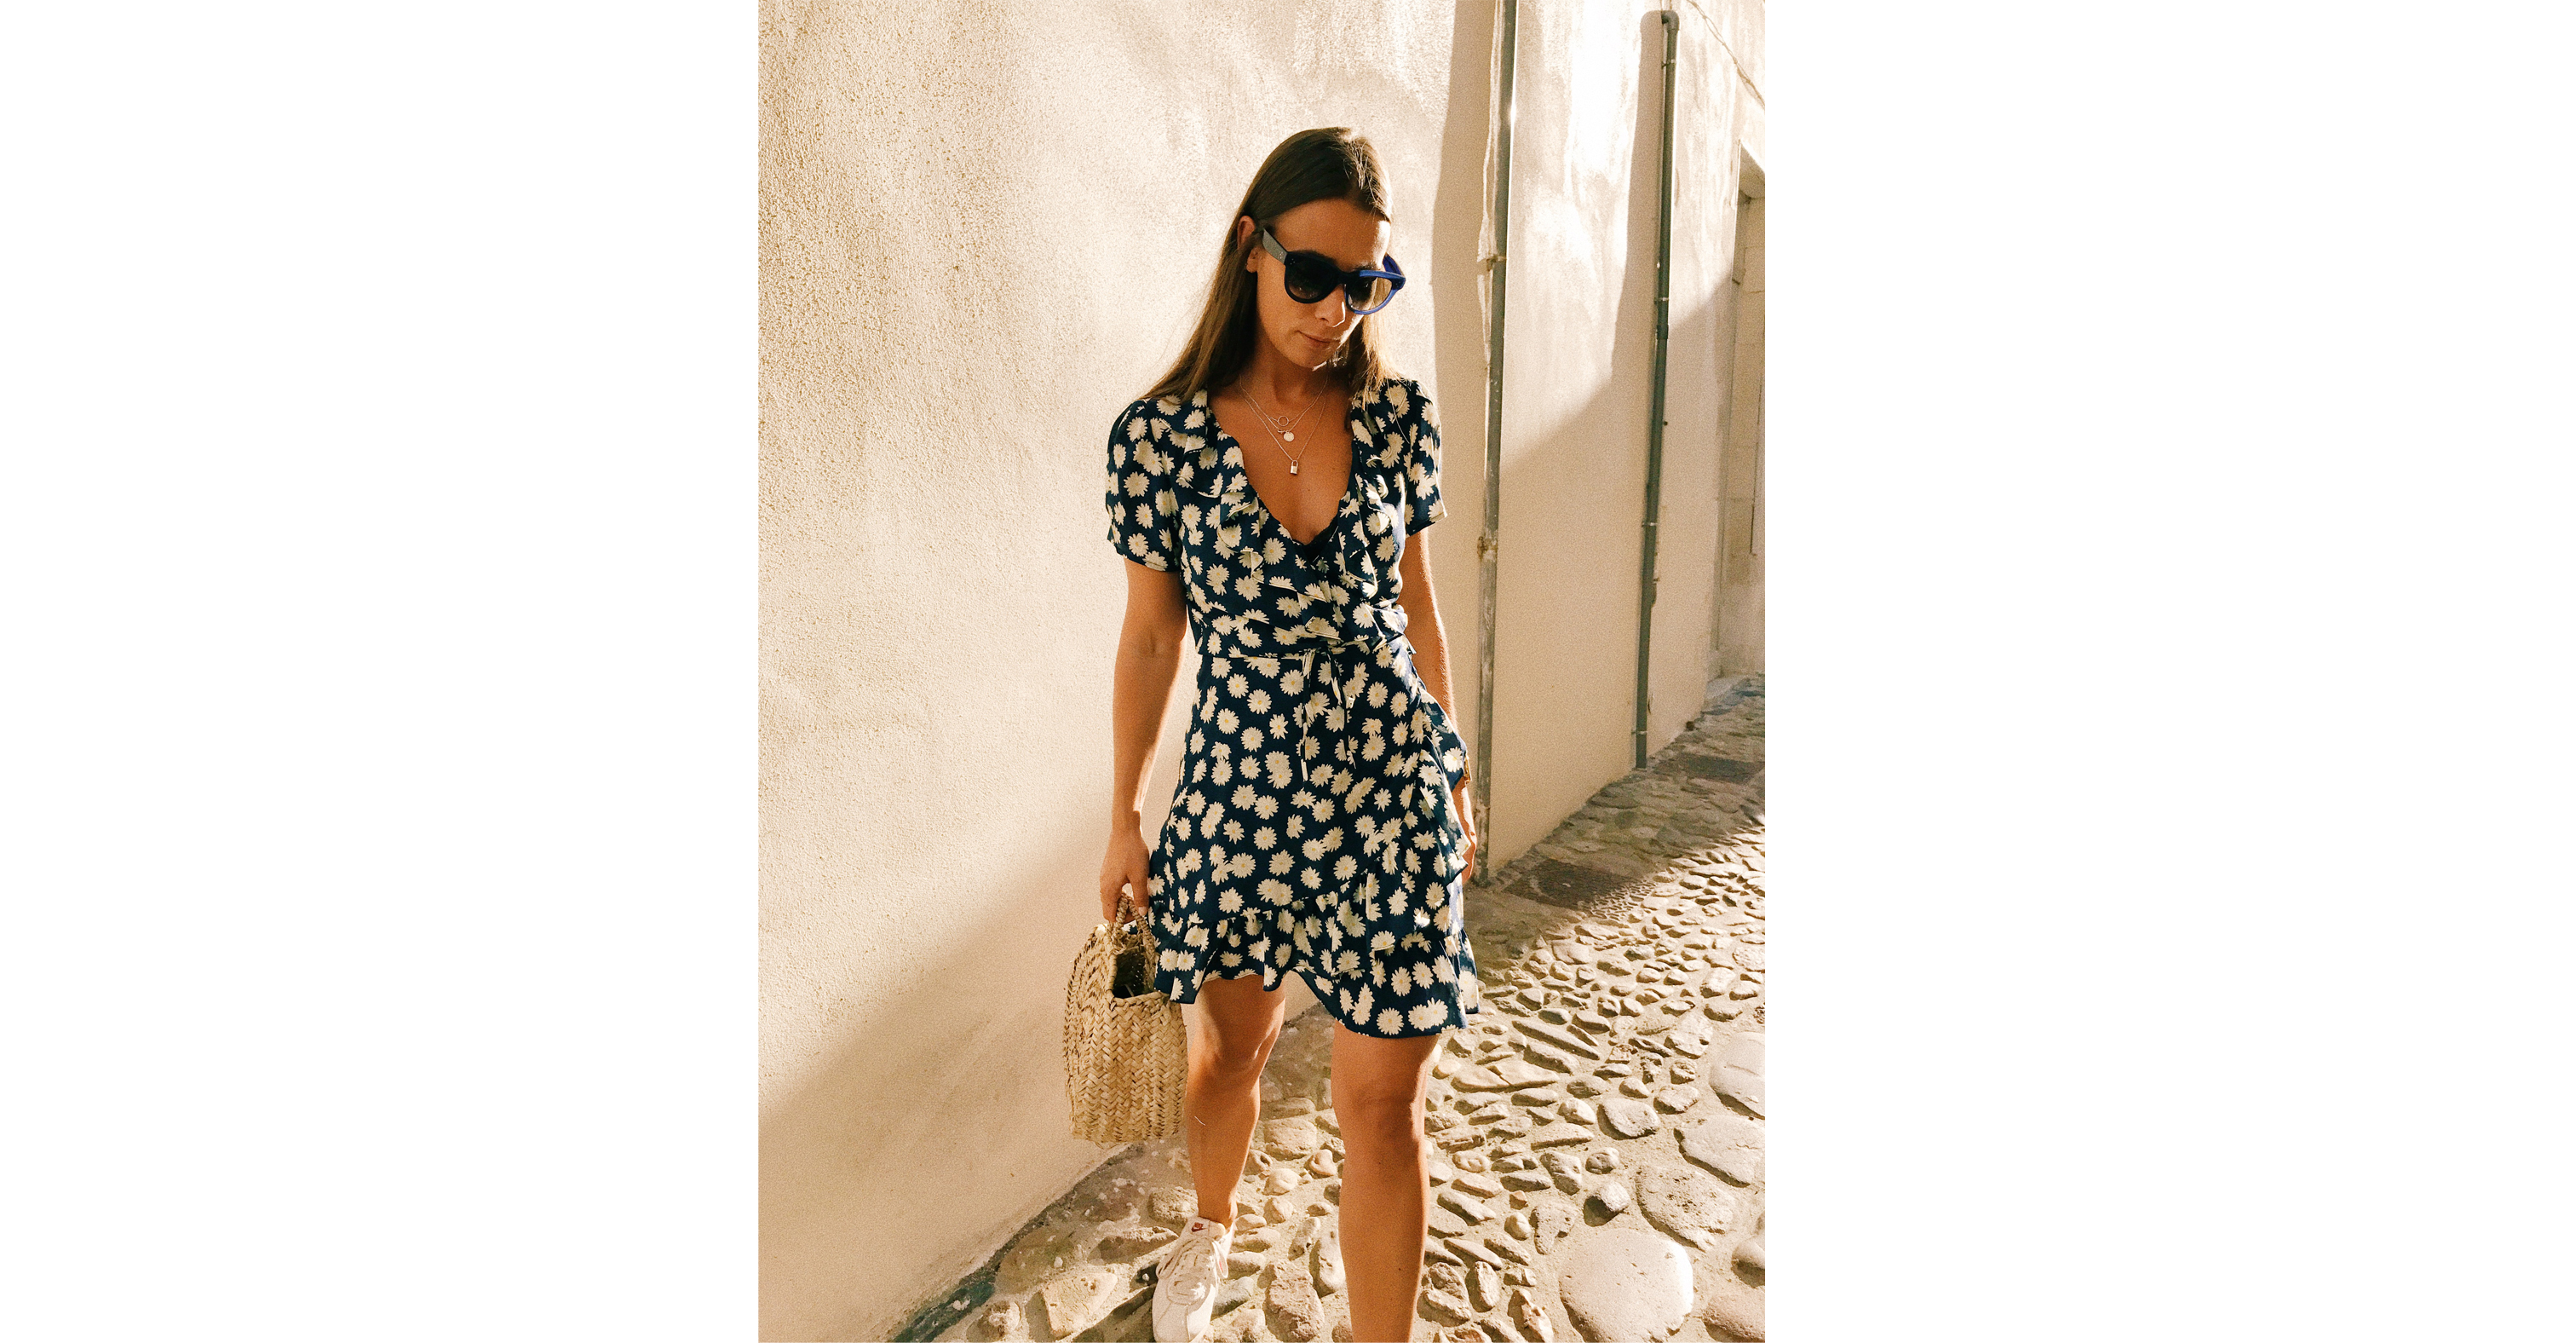 realisation par dress french blog girl frenchy jaimetoutcheztoi